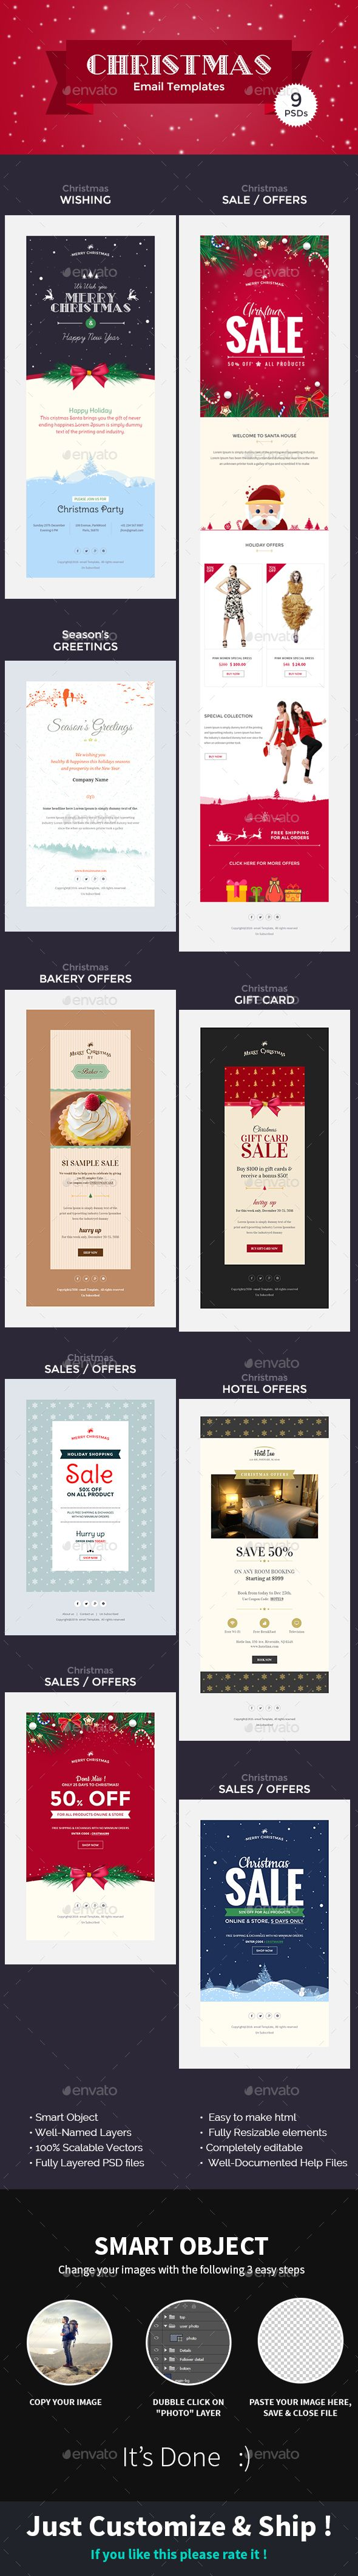 Christmas Offersgreetings Email Template Psd Enewsletter